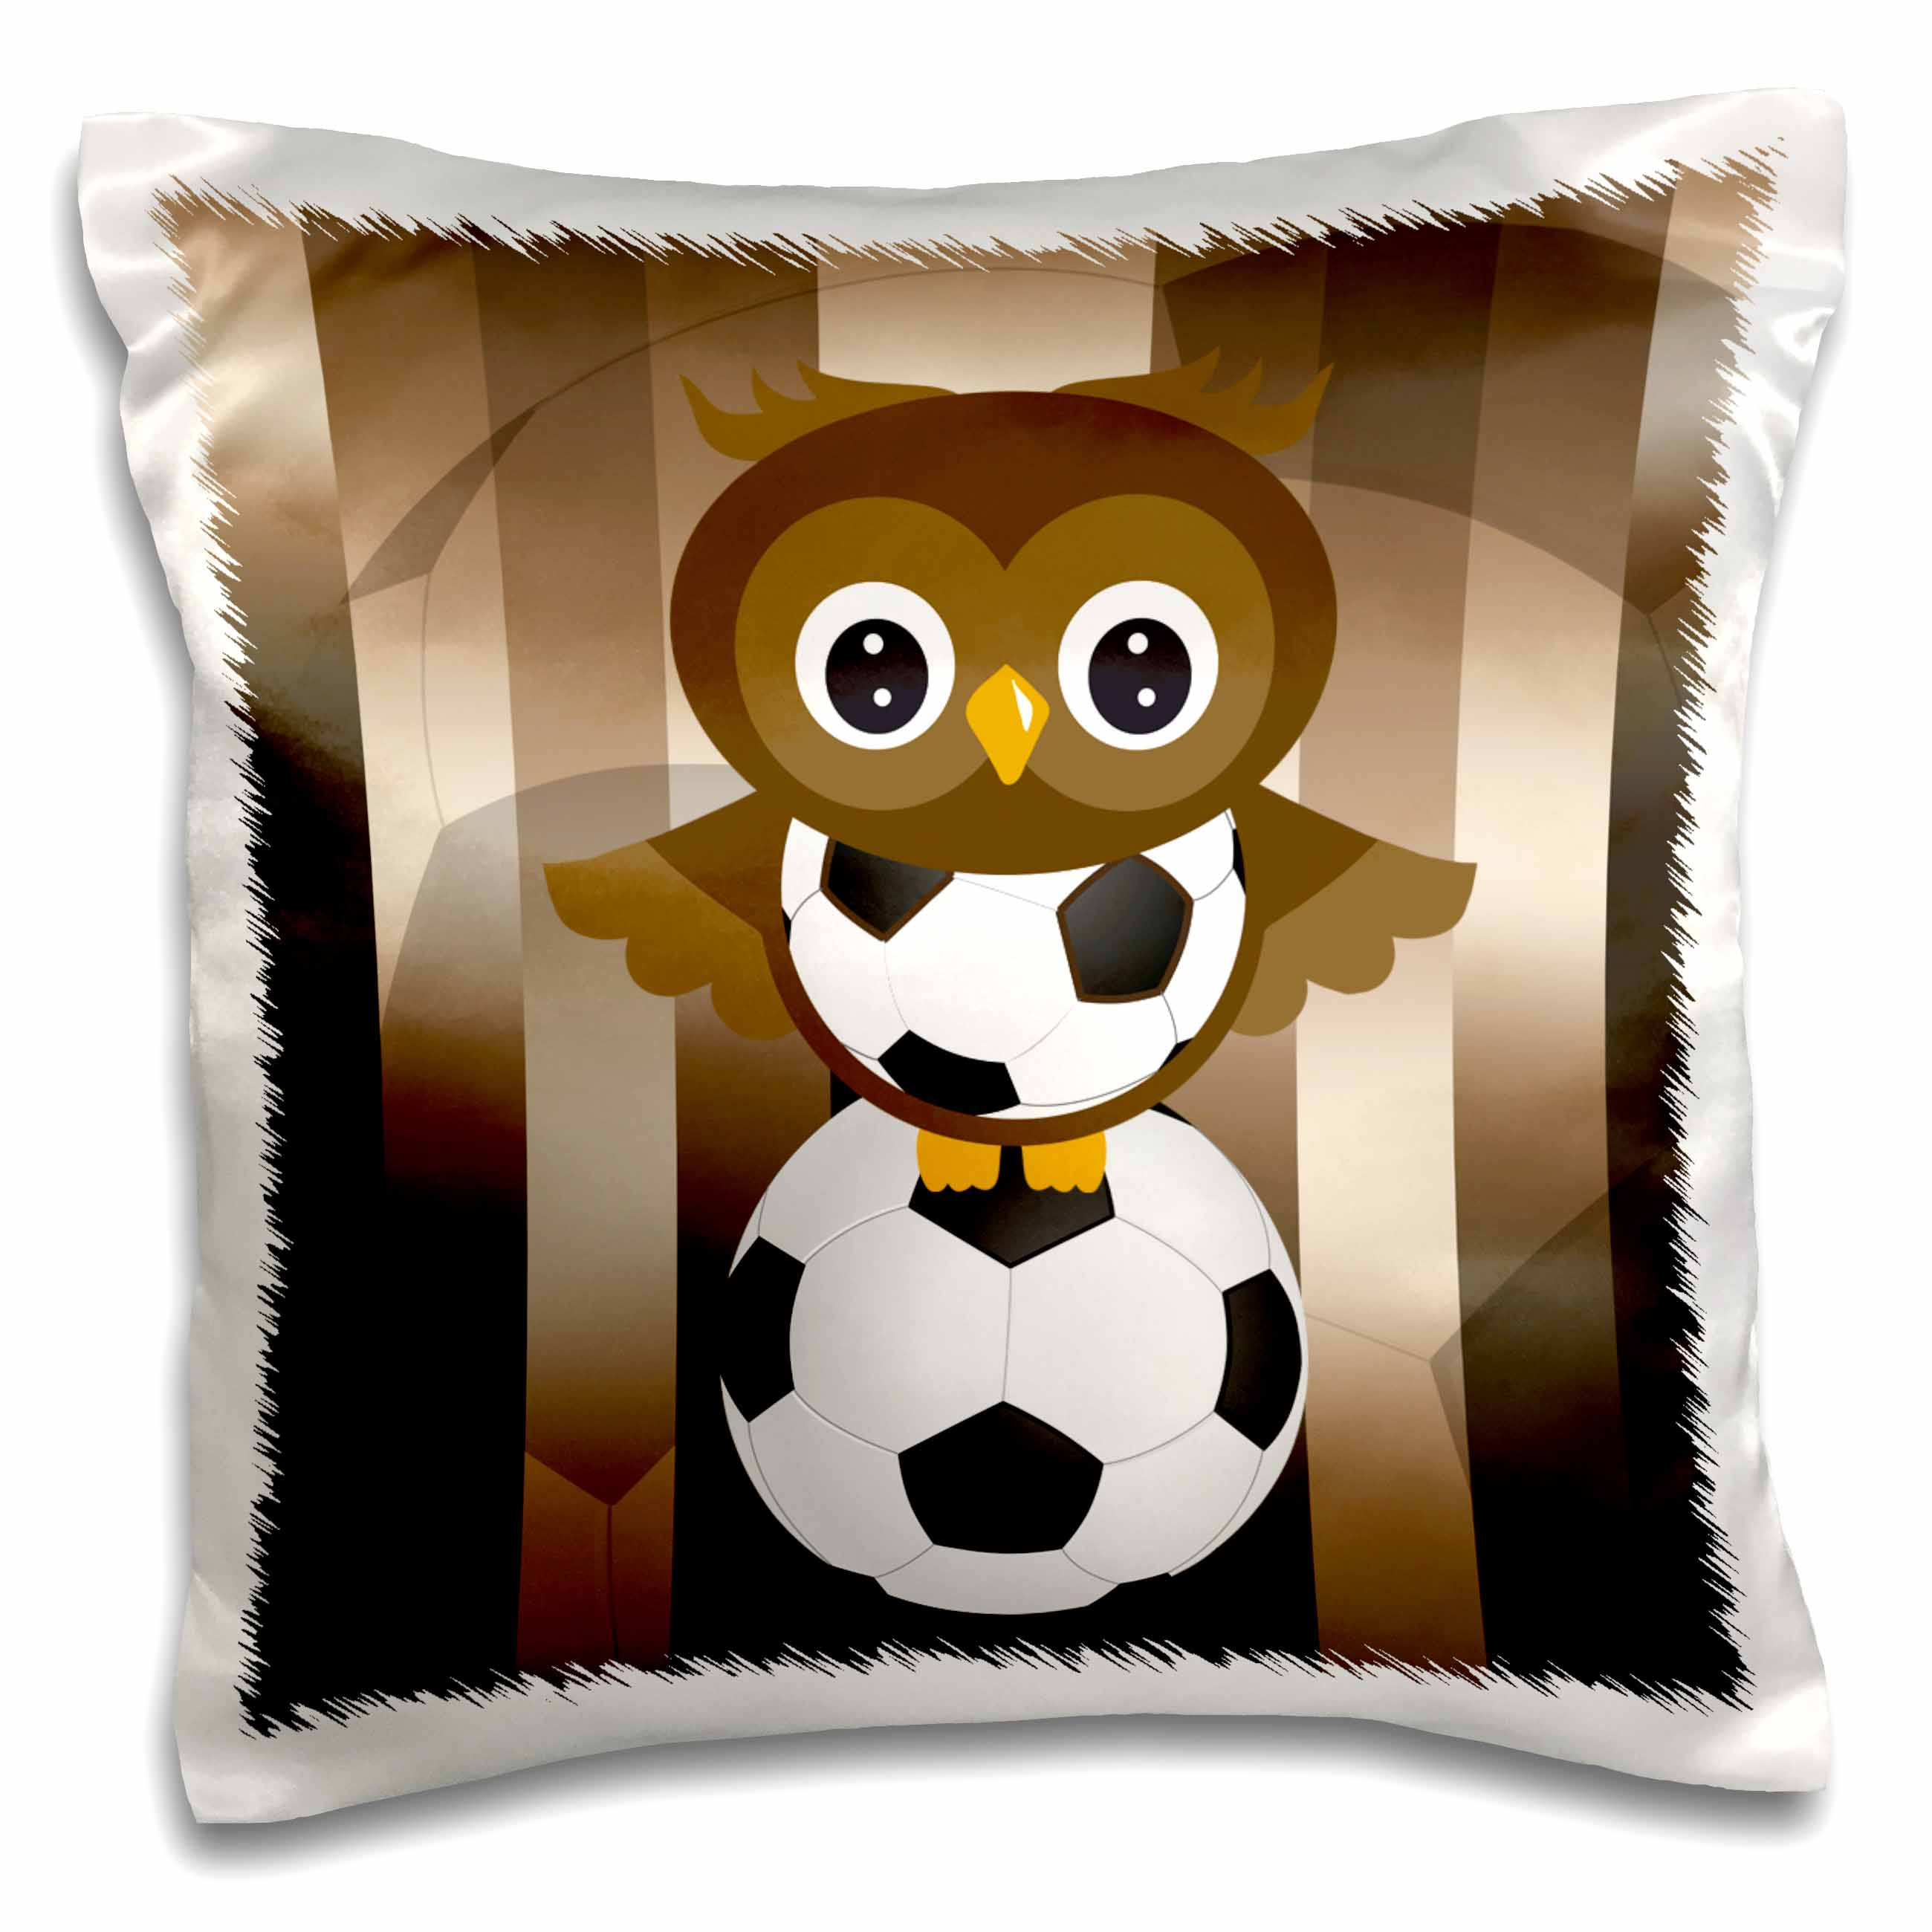 3dRose A cute brown owl stands on a soccer ball, Pillow Case, 16 by 16-inch